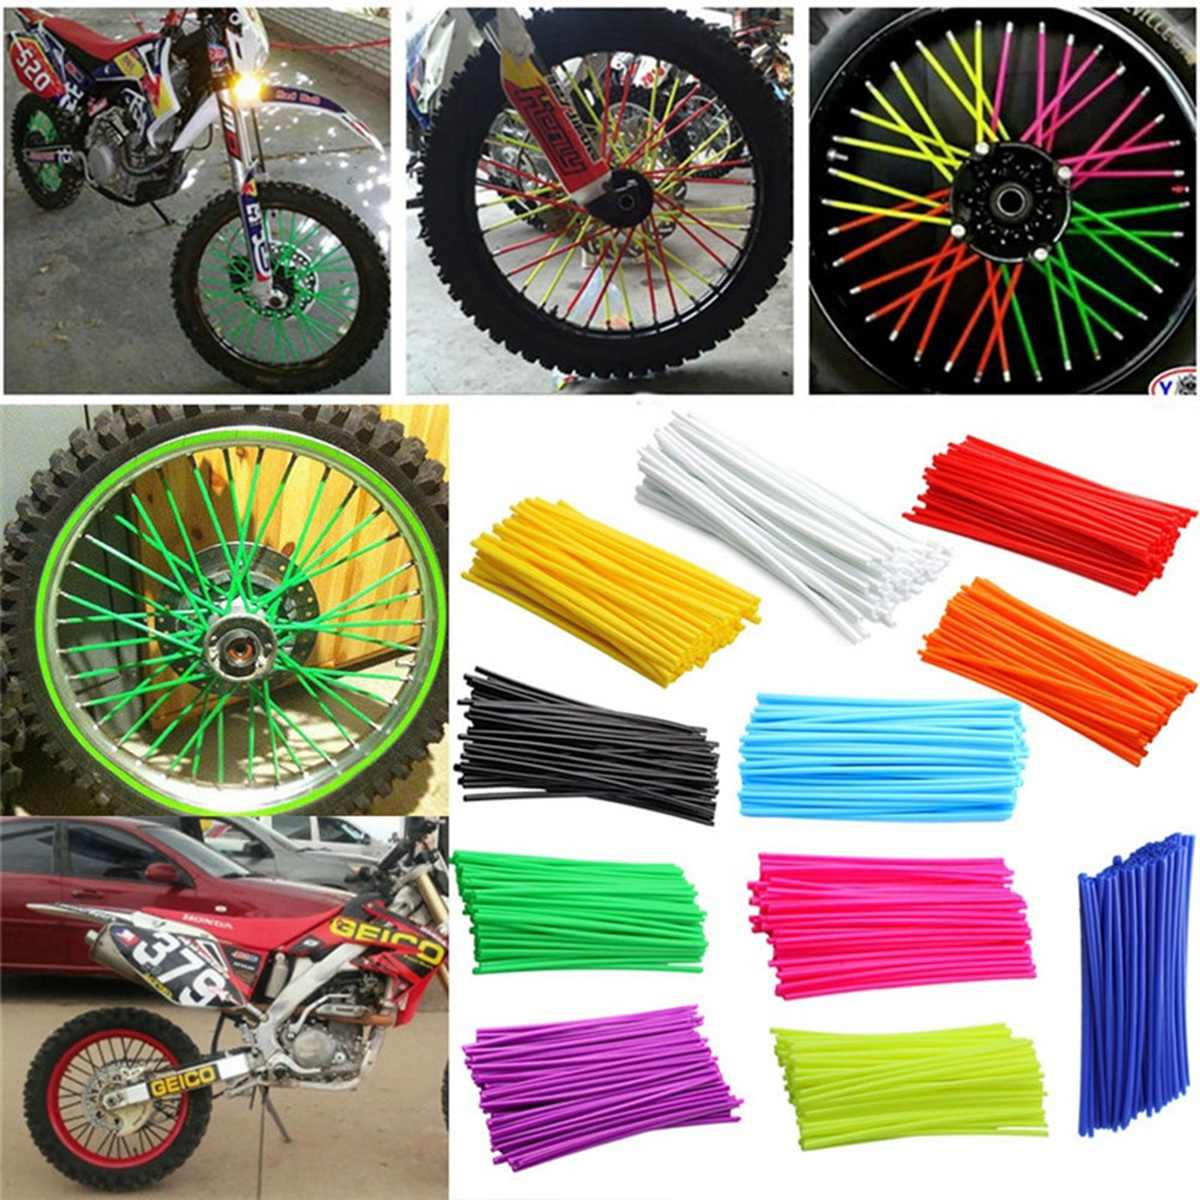 75 Pcs Bike Spoke Skins Covers Decoratie Motorfiets Scooter Dirt Bike Mtb Velg Spoke Wraps Protector Motor Styling